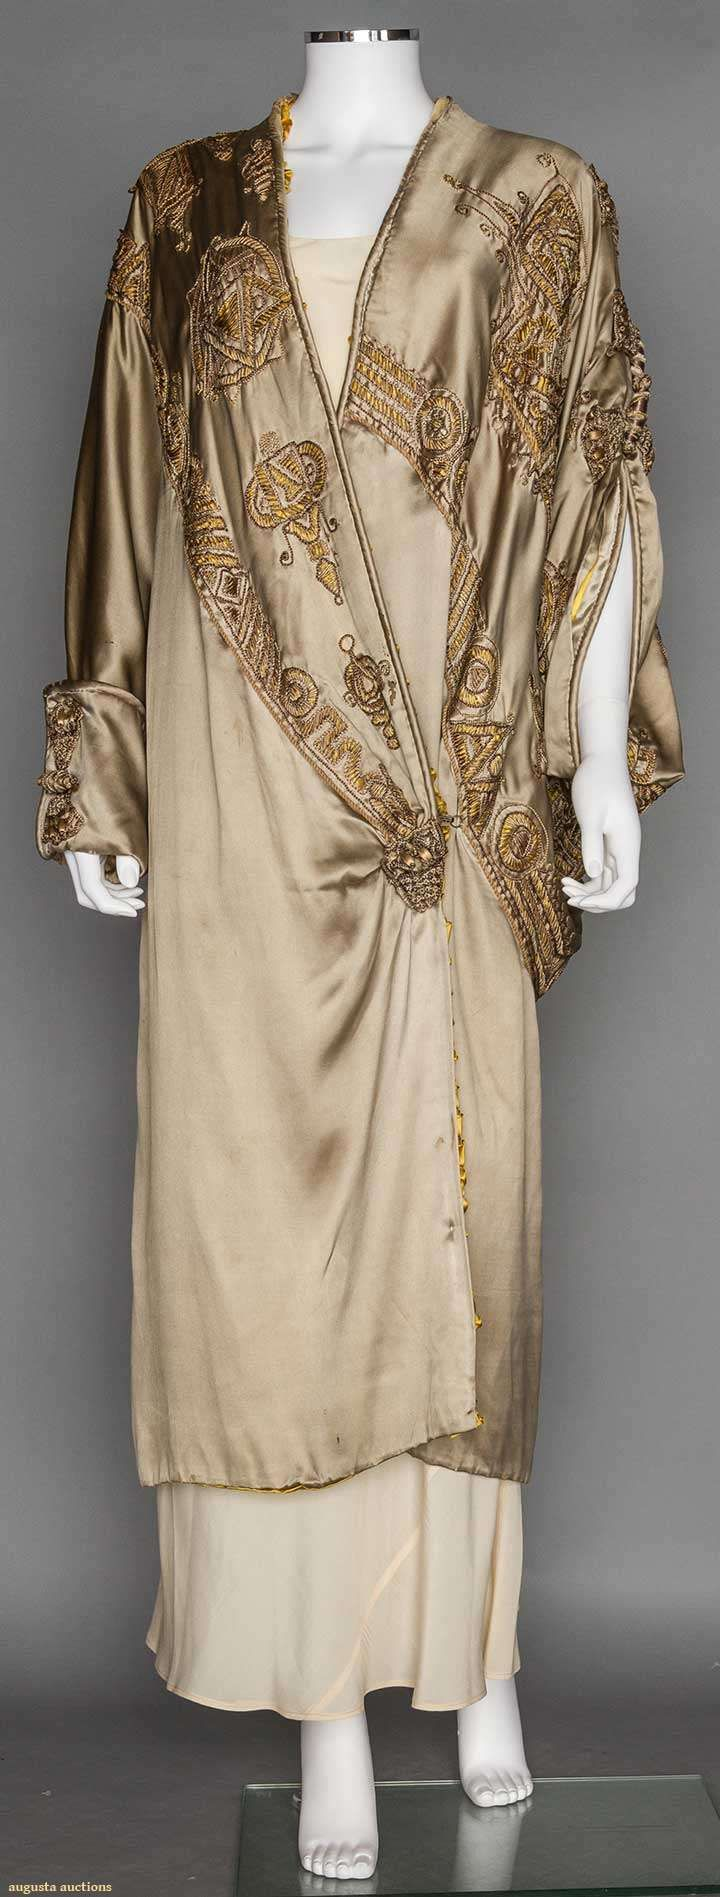 Avant Garde Opera Coat 1910-1920 Taupe silk charmeuse trimmed in various gold applique motifs outlined w/ embroidery & taupe soutache, cross over opening, 1 tubular sleeve & 1 cape-like sleeve, gold satin lining,